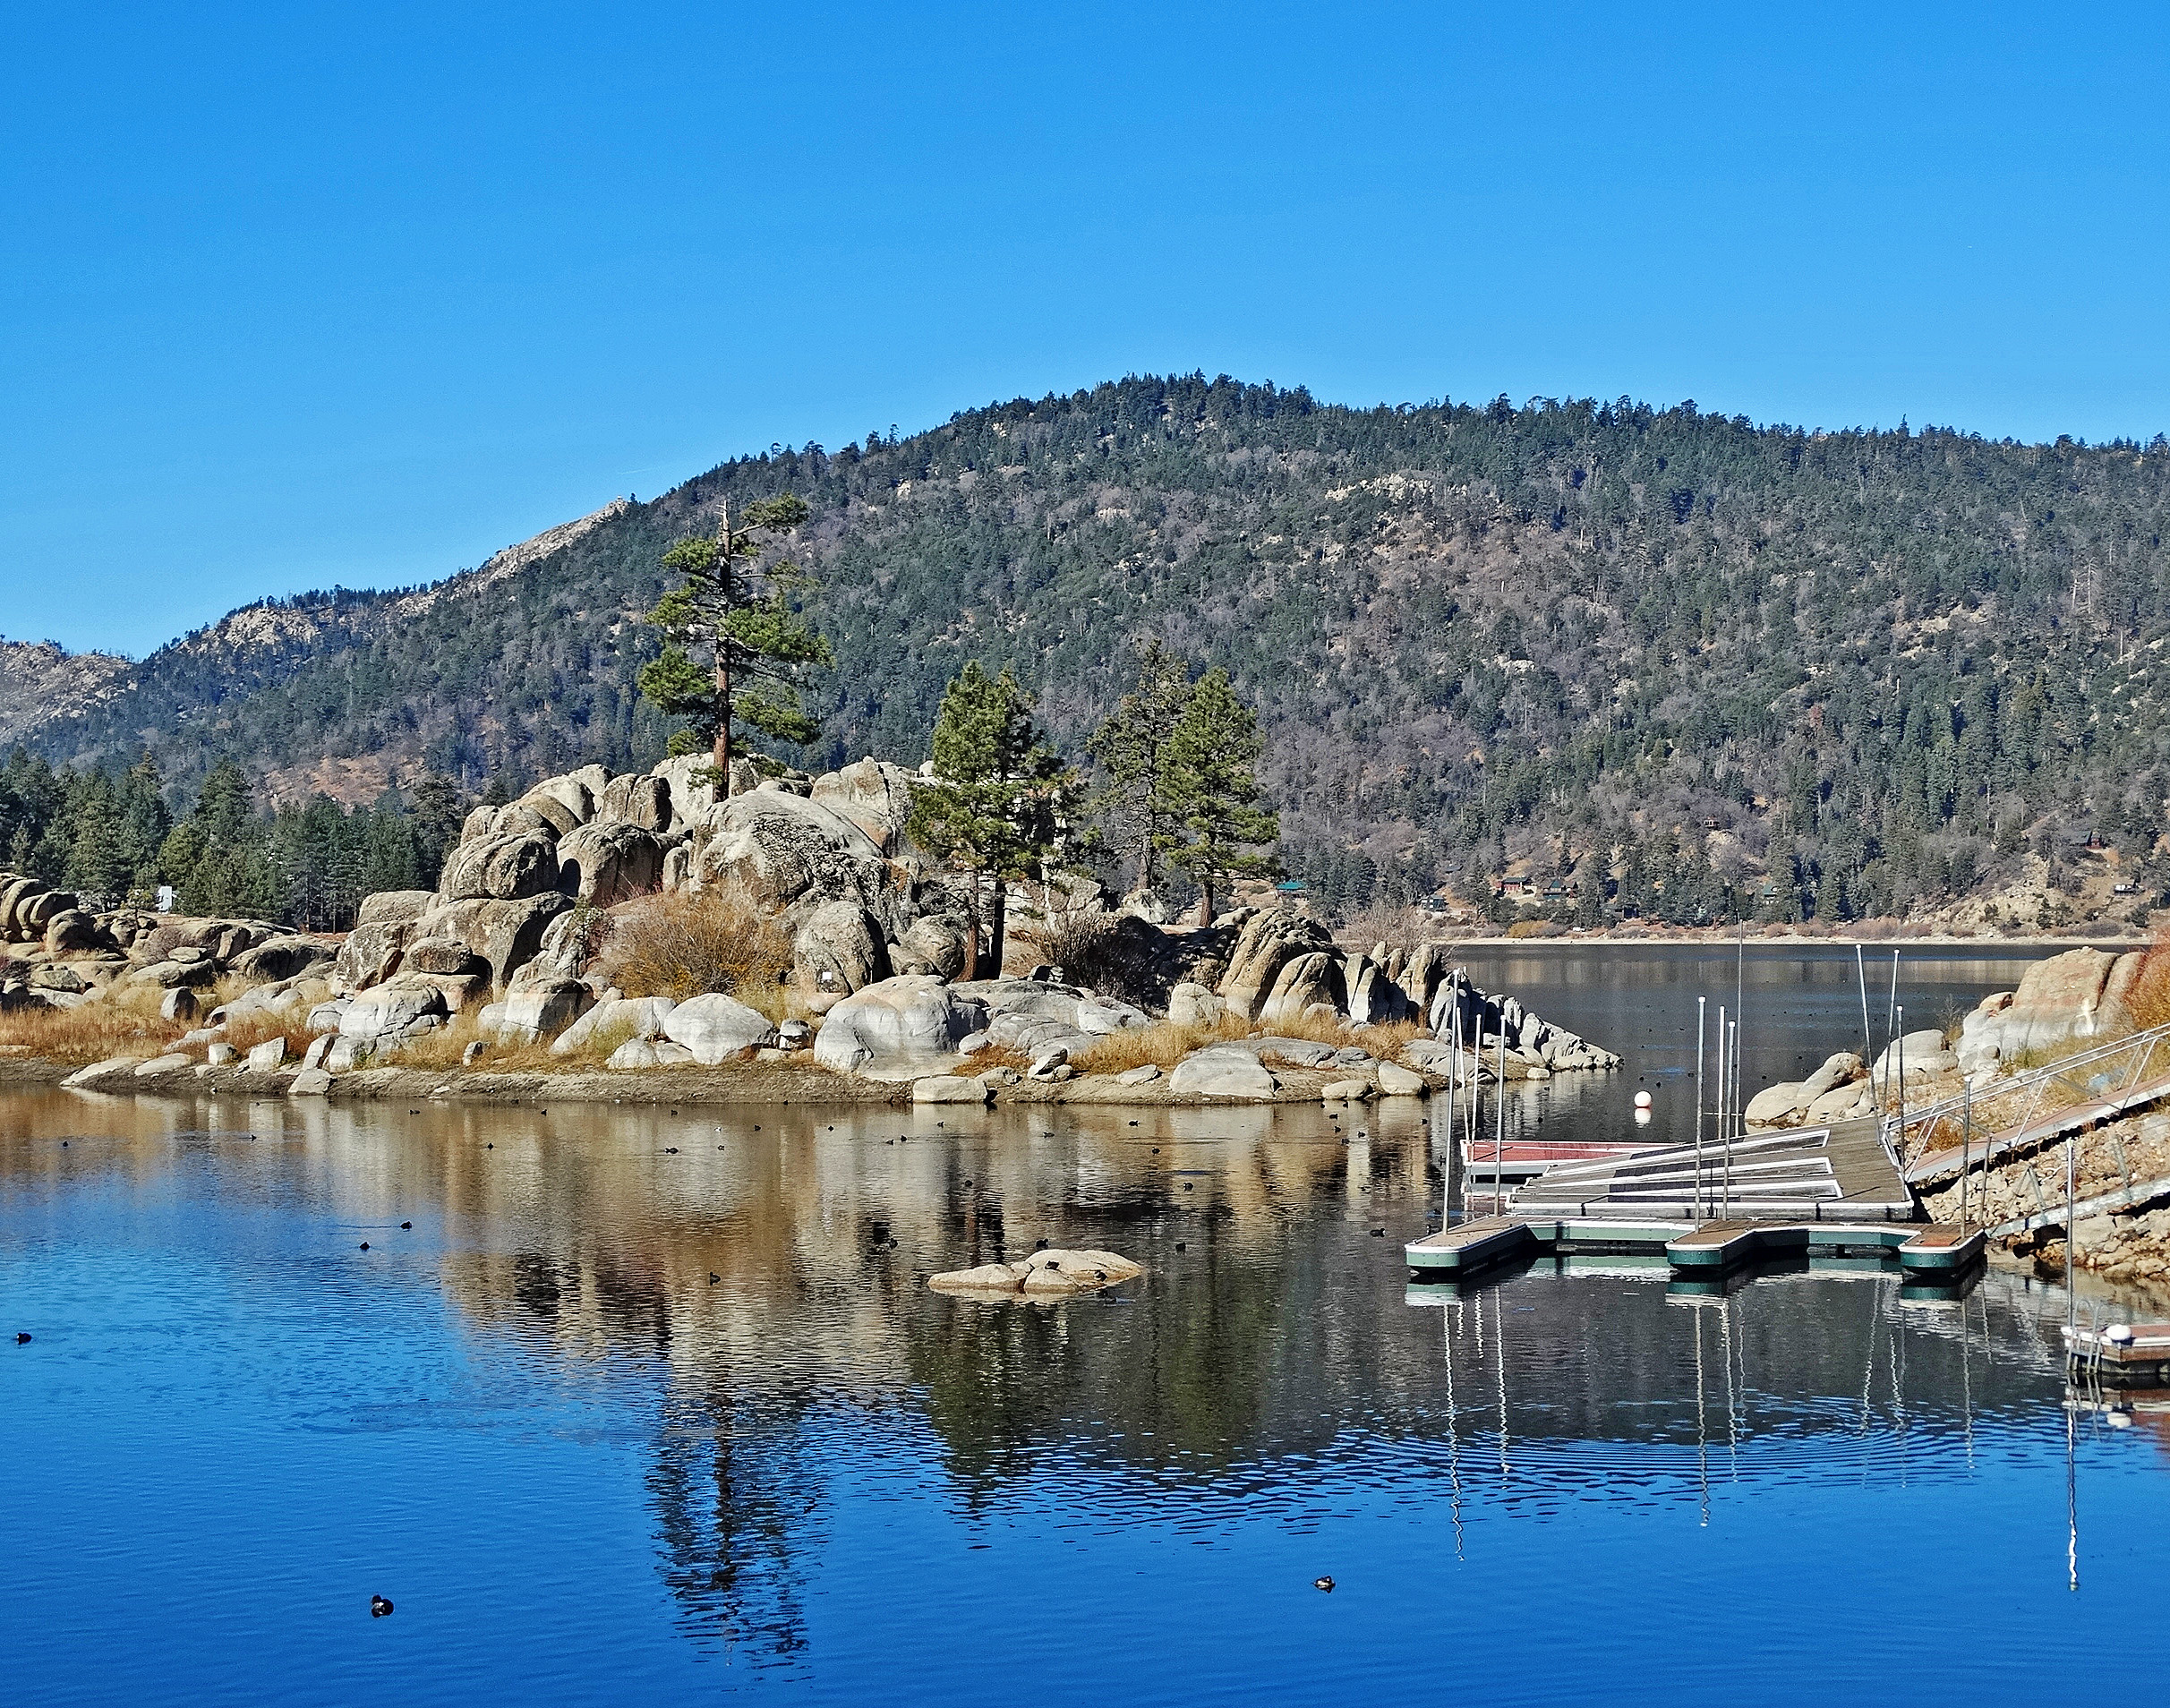 big bear lake cougars personals 46 miles round trip easy - moderate level with some view points of the lake big bear this was the first official hike of my life a good friend of mine is all into hiking and was looking forward to this hike when we decided on camping in big bear.